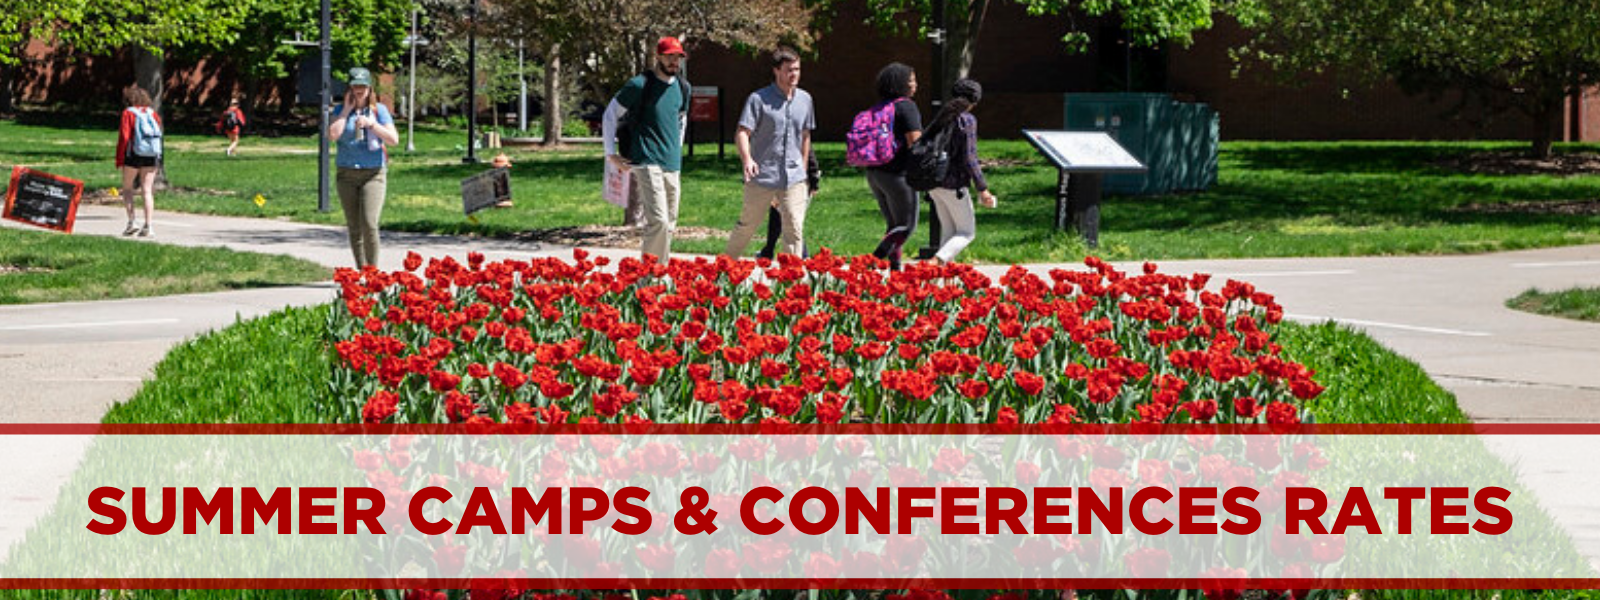 summer camps and conferences rates. photo of flowers on campus